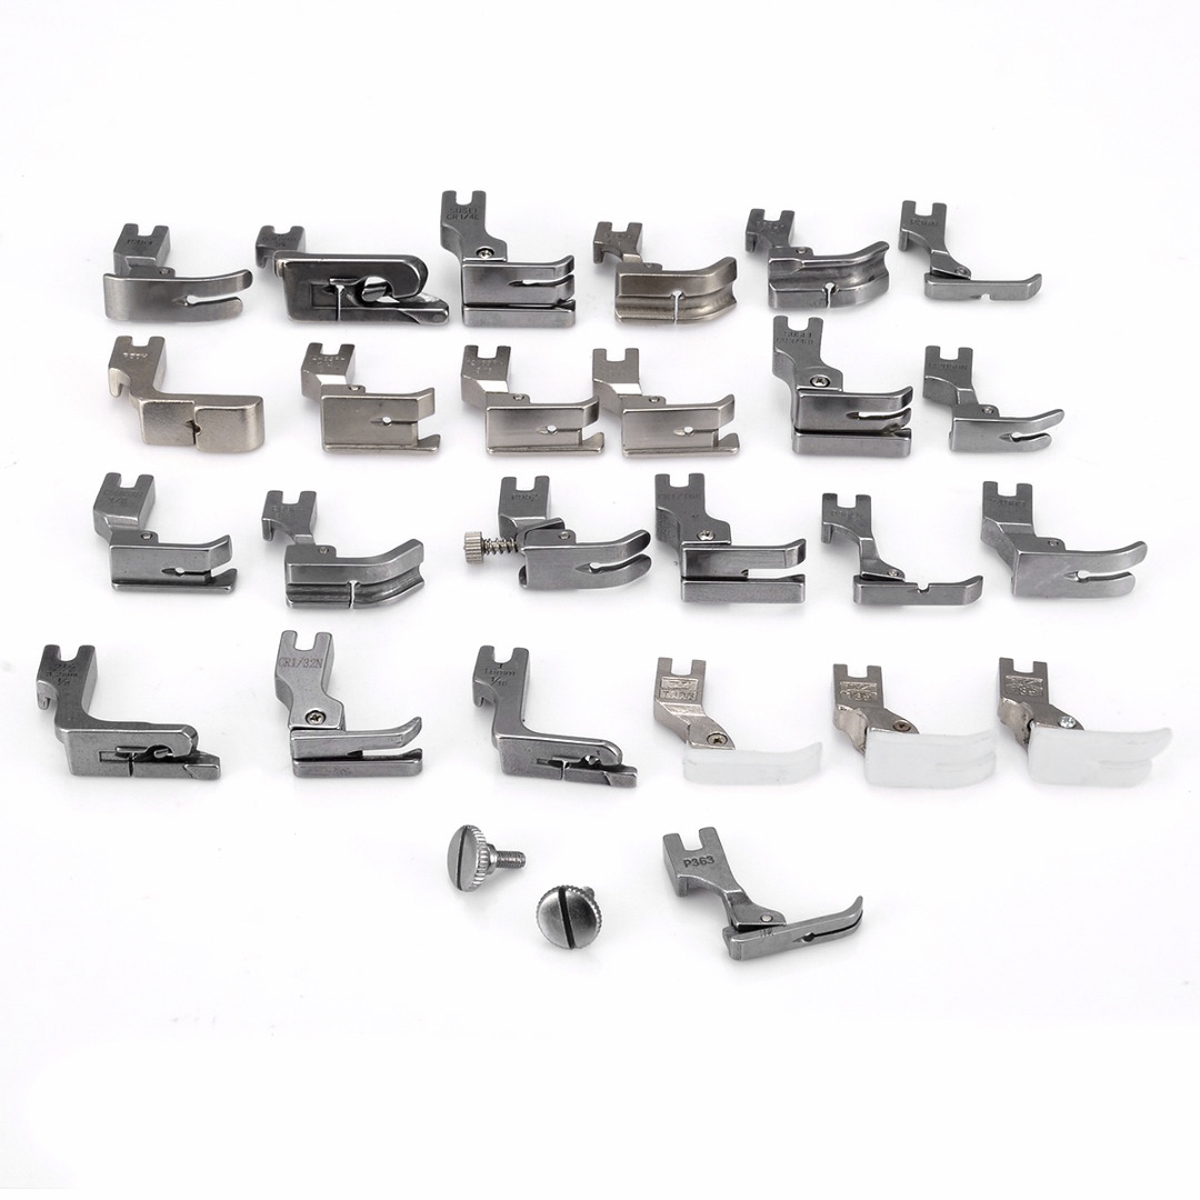 NEW 25Pcs/Set Sewing Machine Presser Foot Set Sewing Accessories For JUKI DDL-5550 8500 8700 Industrial Sewing Machine